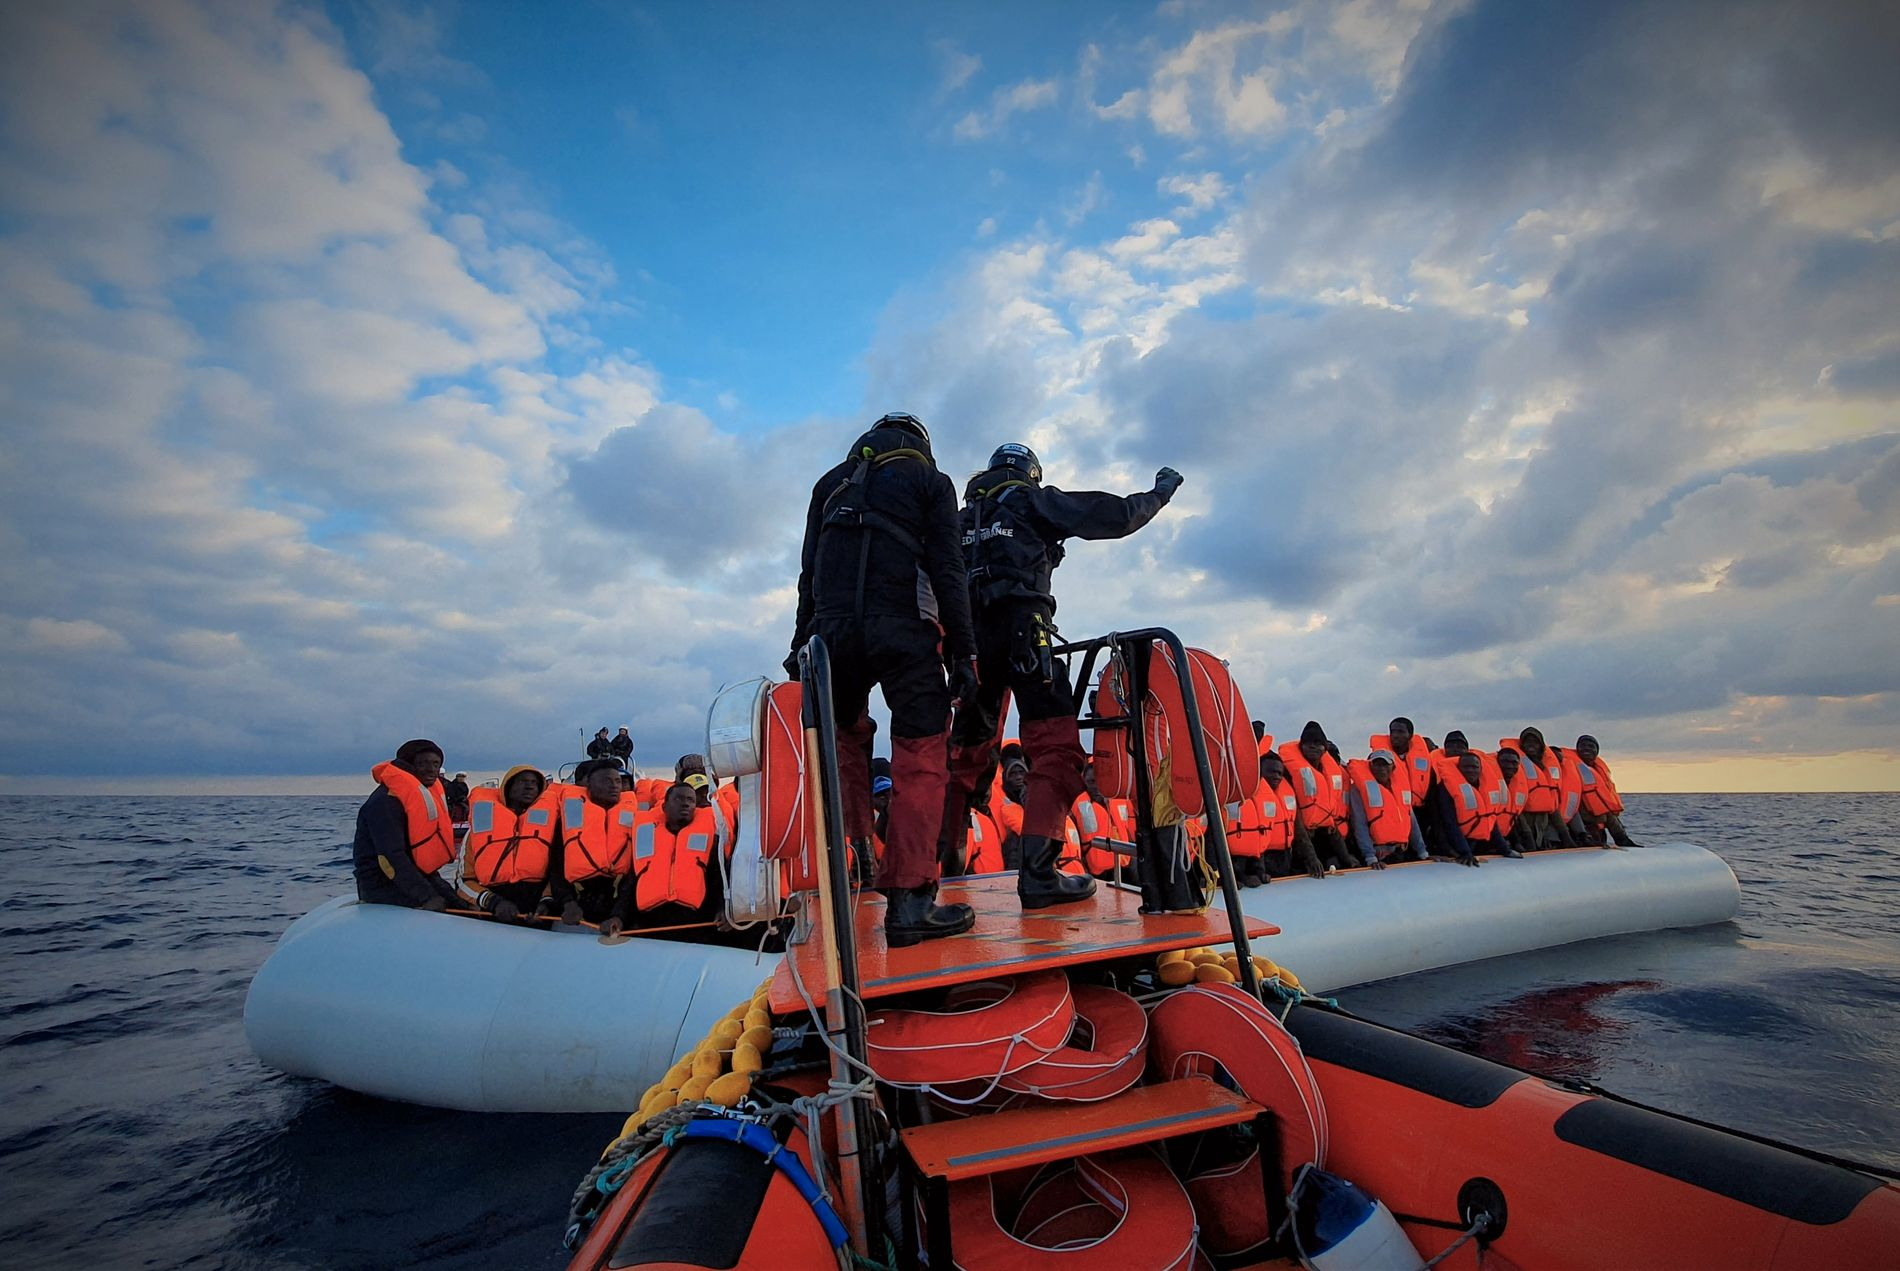 Libya: Asylum seekers' drowning at sea is due to repeated illegal returns